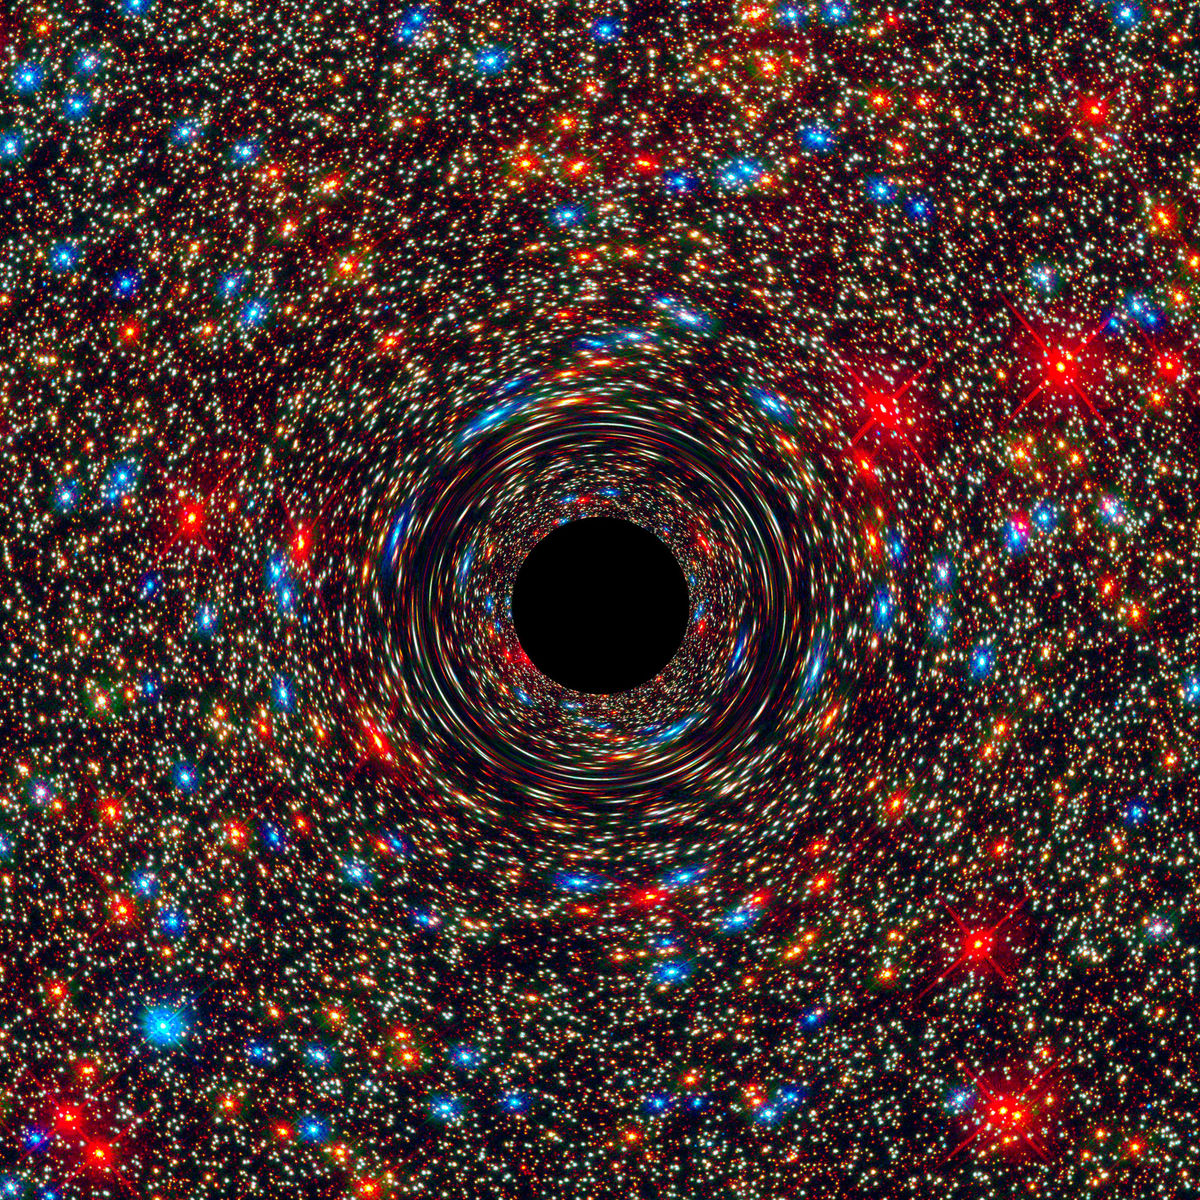 behemoth-black-hole-found-in-an-unlikely-place_26209716511_o-orig.jpg